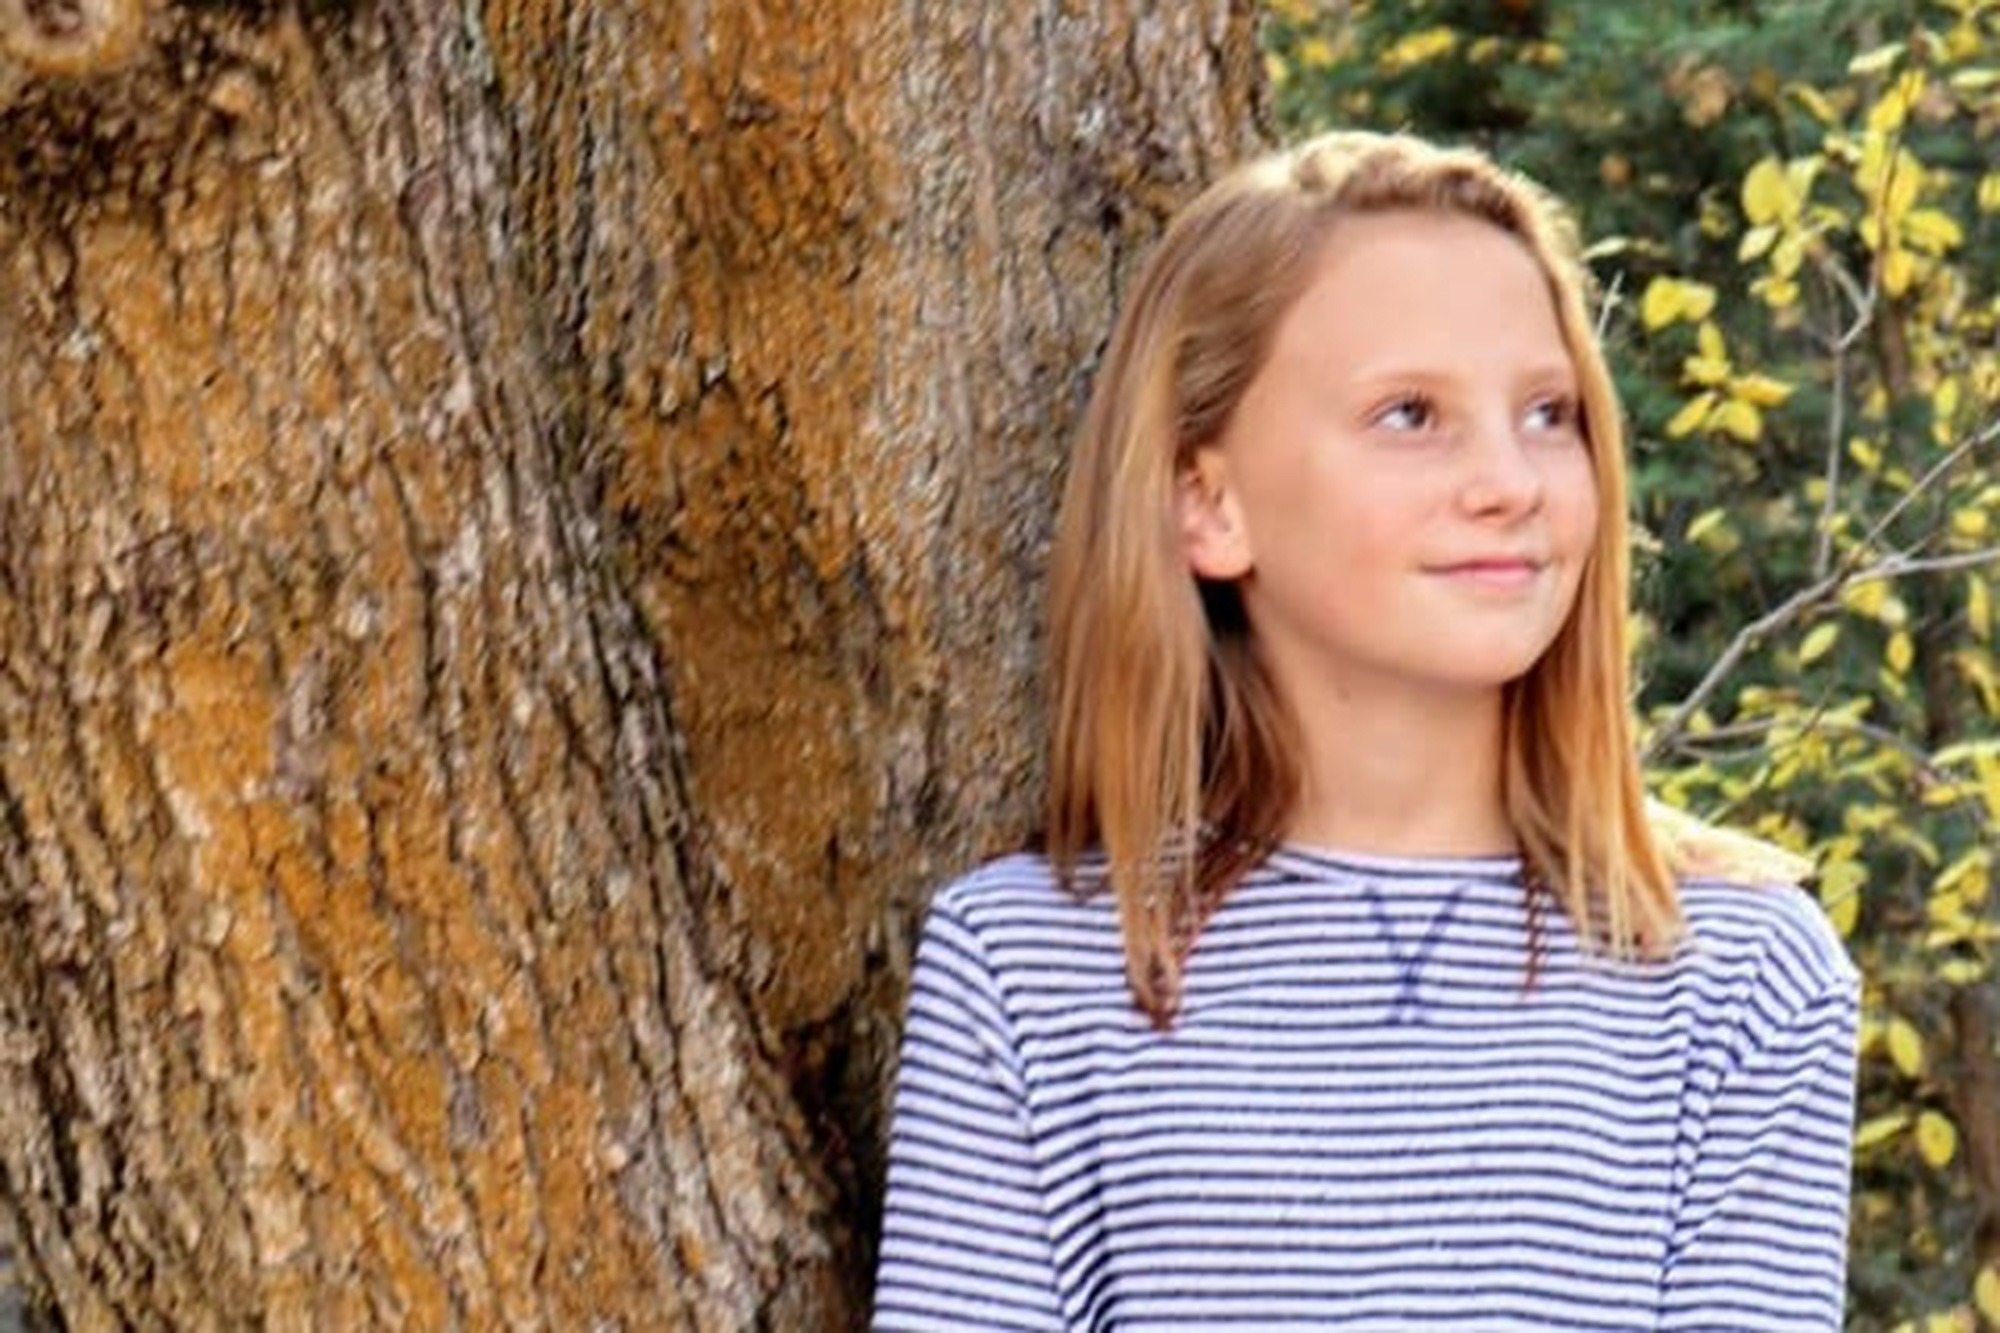 Baily Monson - 13-Year-Old Girl Killed by Falling Tree While Boating with Family in Oregon